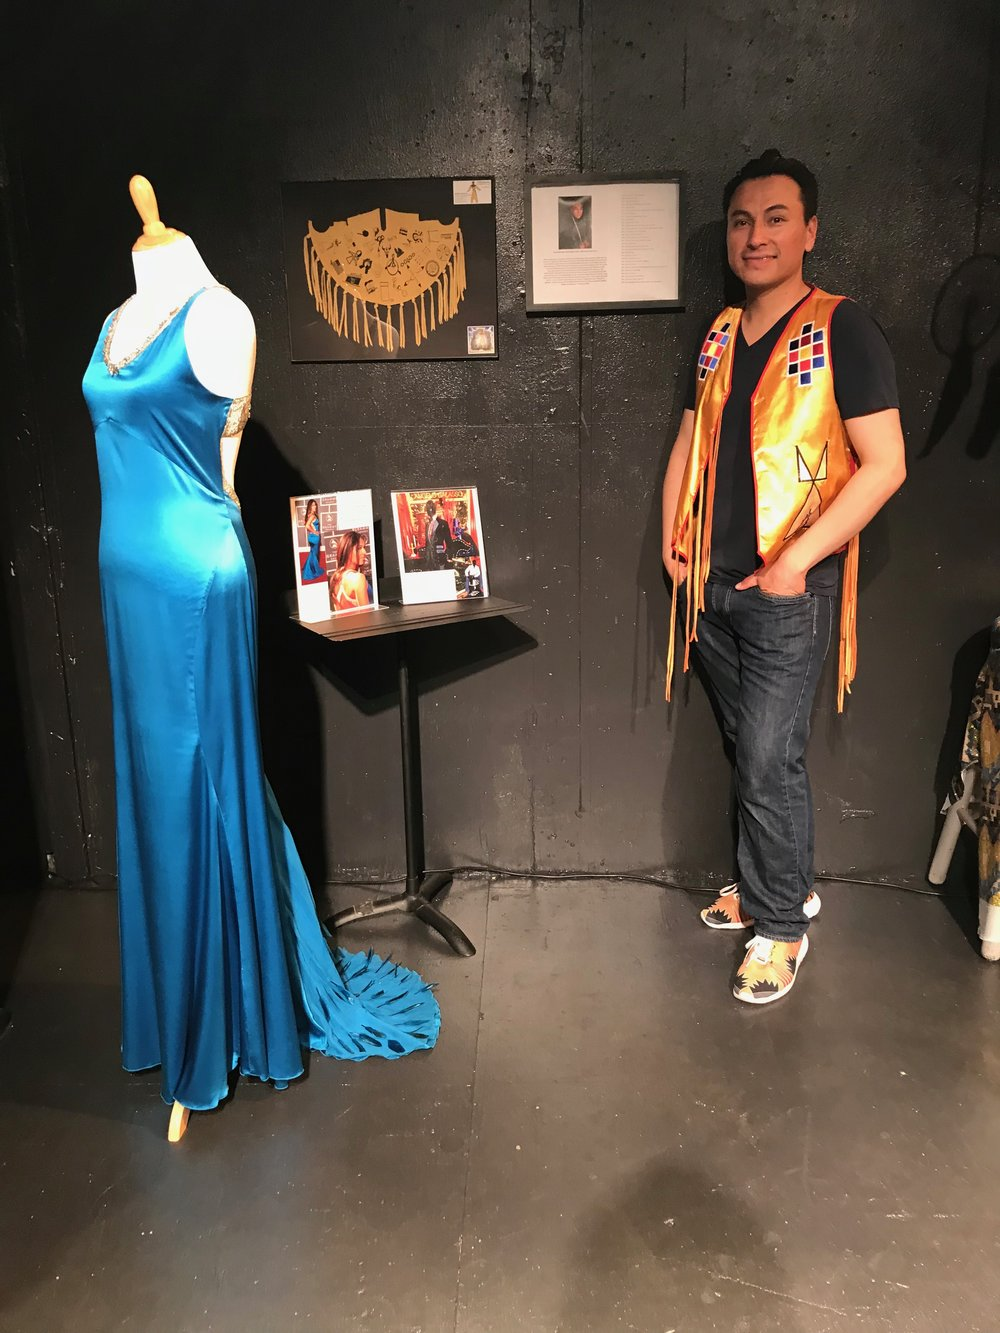 Sheldon with the dress he designed that was worn by Jana Mashonee at the 2007 GRAMMY Awards.